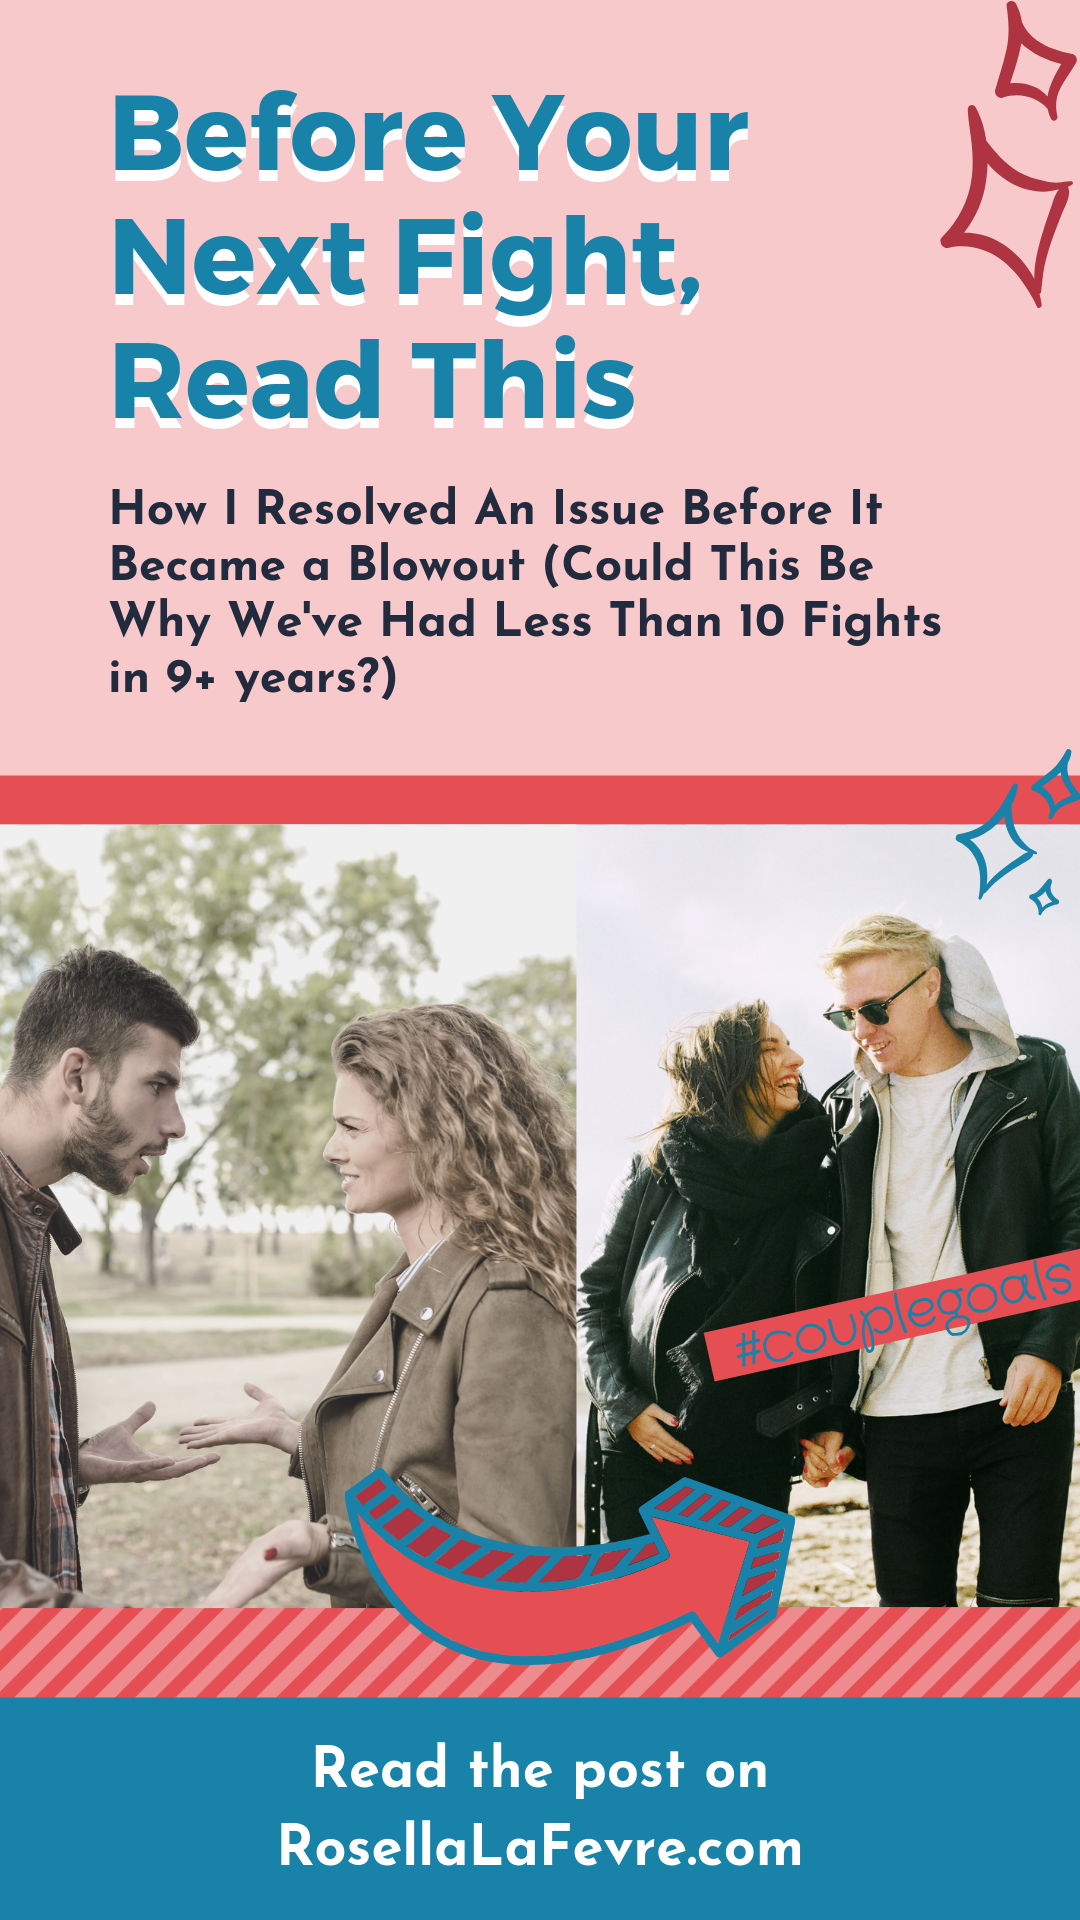 Stop Fighting With Your Partner! The author, Rosella LaFevre, and her boyfriend have had less than 10 fights in their 9+ years together. Could the way she avoided a fight over dirty dishes be how you can avoid fighting with your boyfriend?